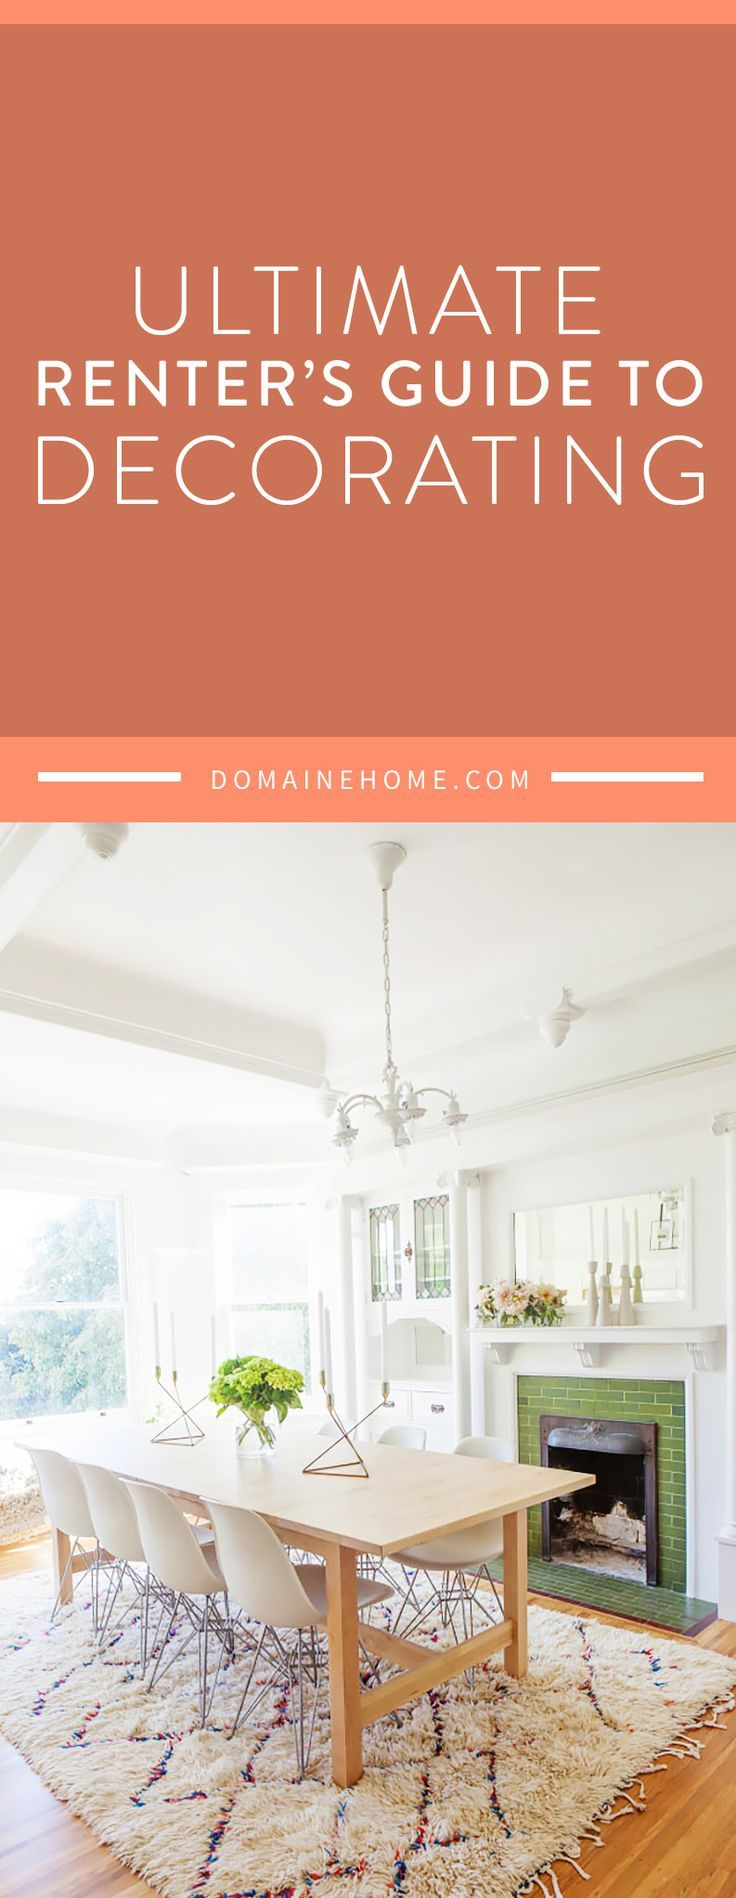 How to make a rental living space feel like home, from temporary renovations to simple, affordable upgrades and tips for personalizing.